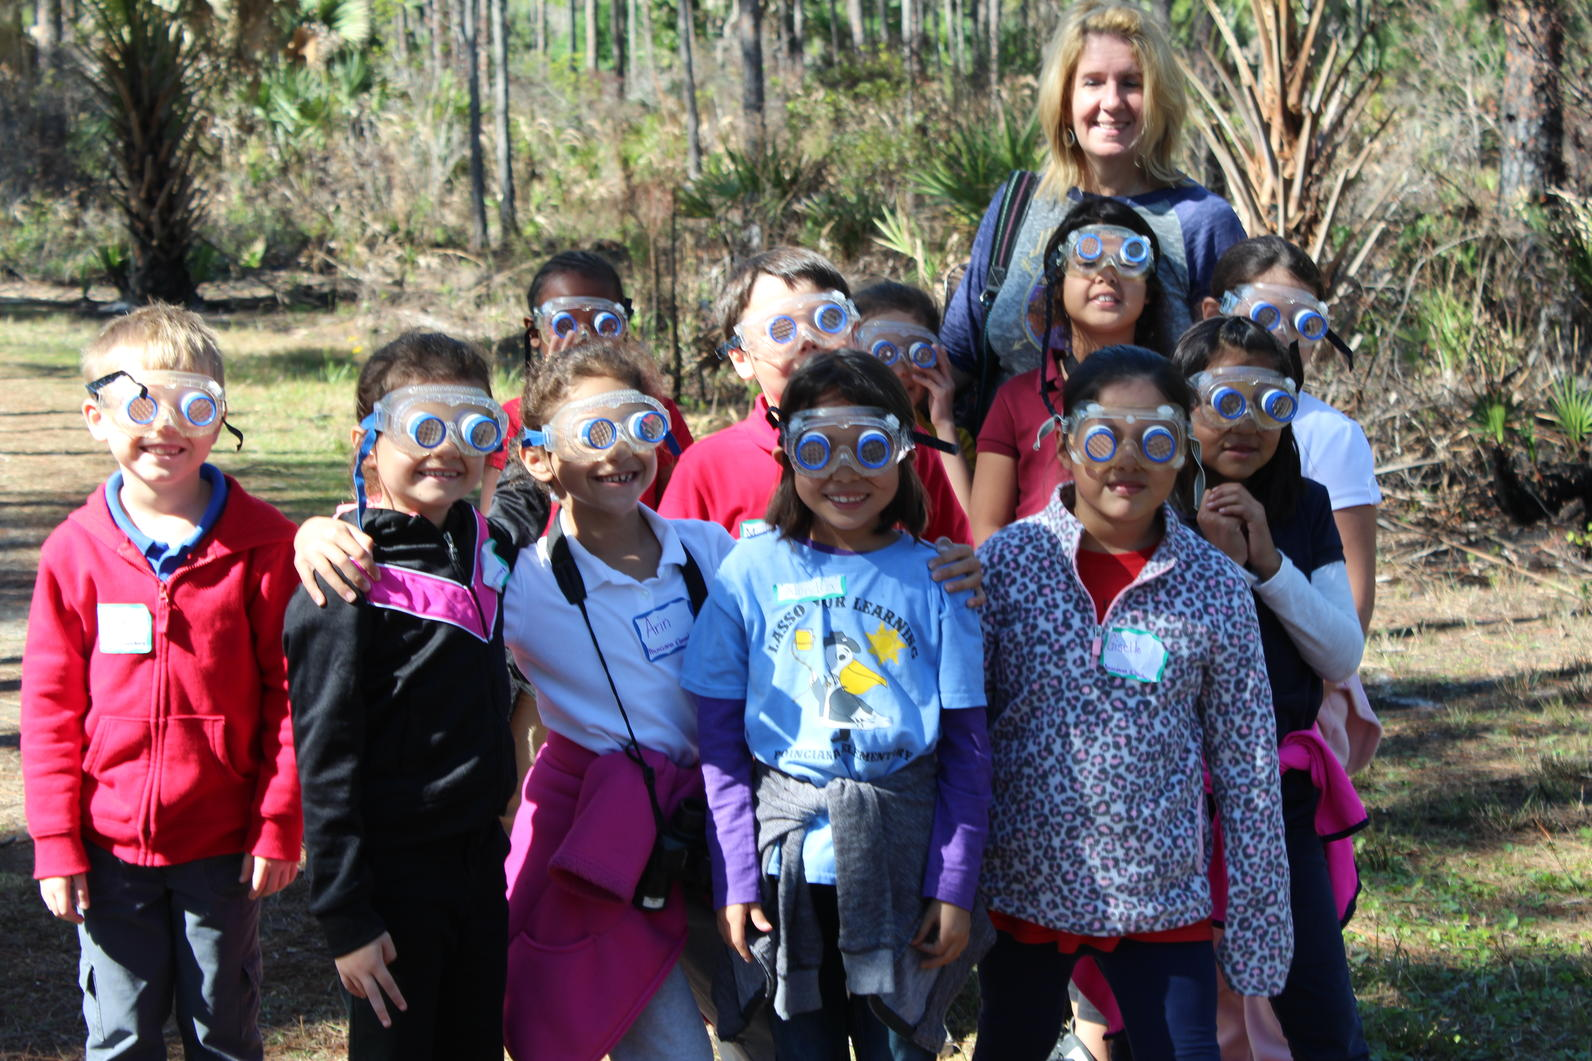 pes students with eye goggles